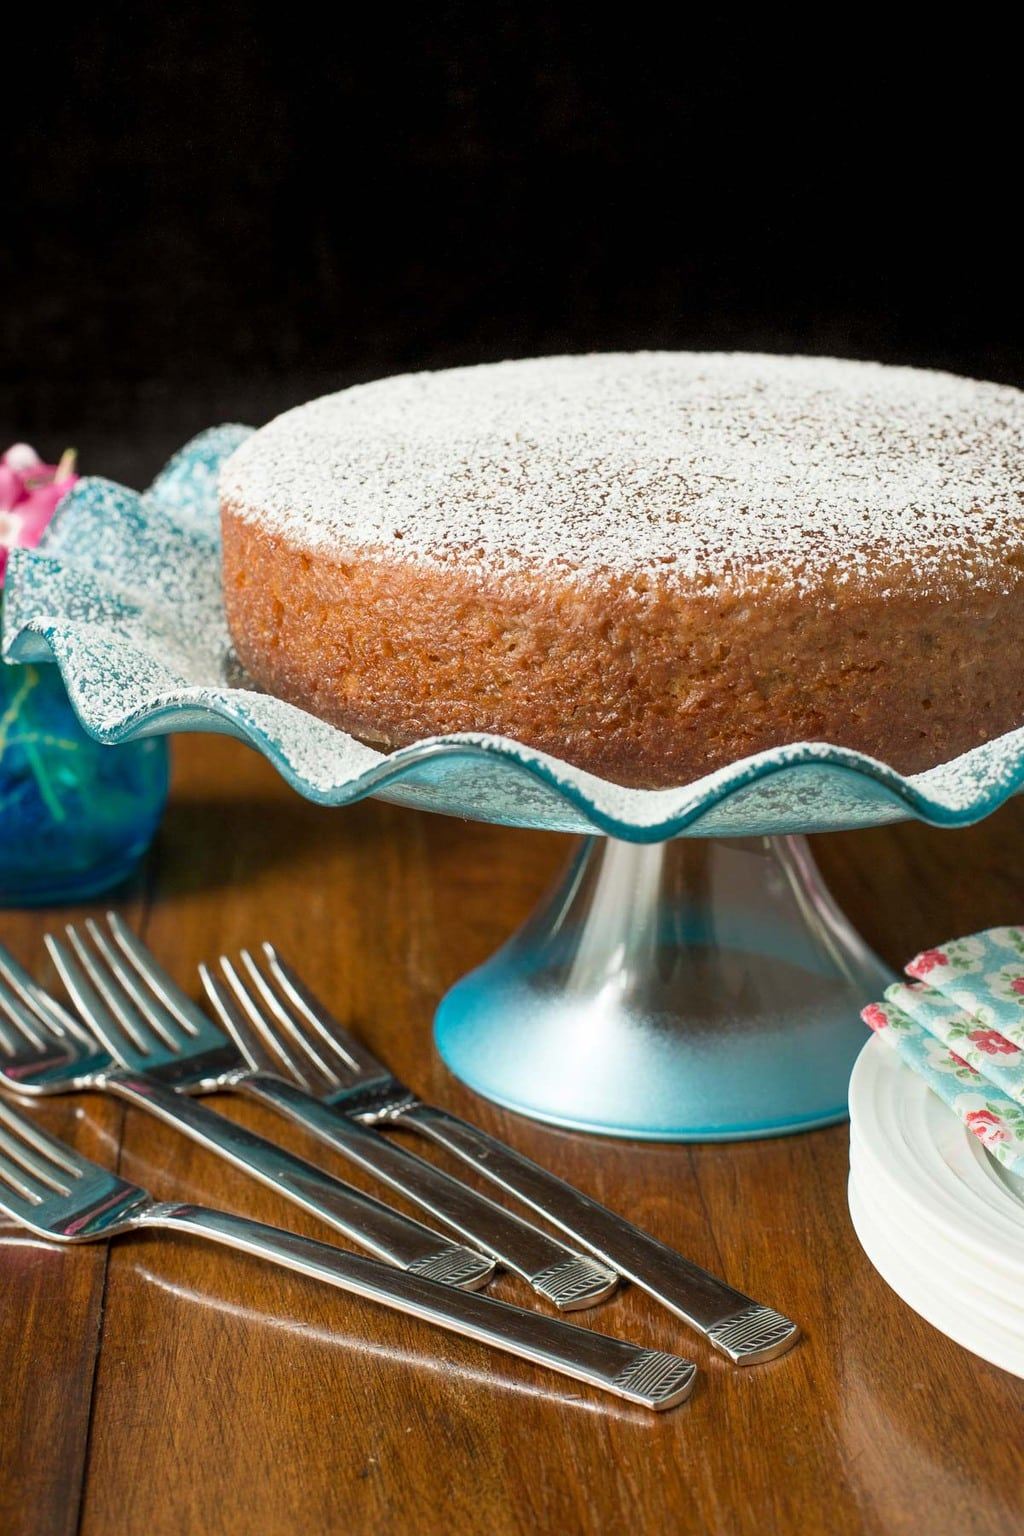 Photo of a Fall Spice Cake sprinkled with powdered sugar on a turquoise glass cake stand.